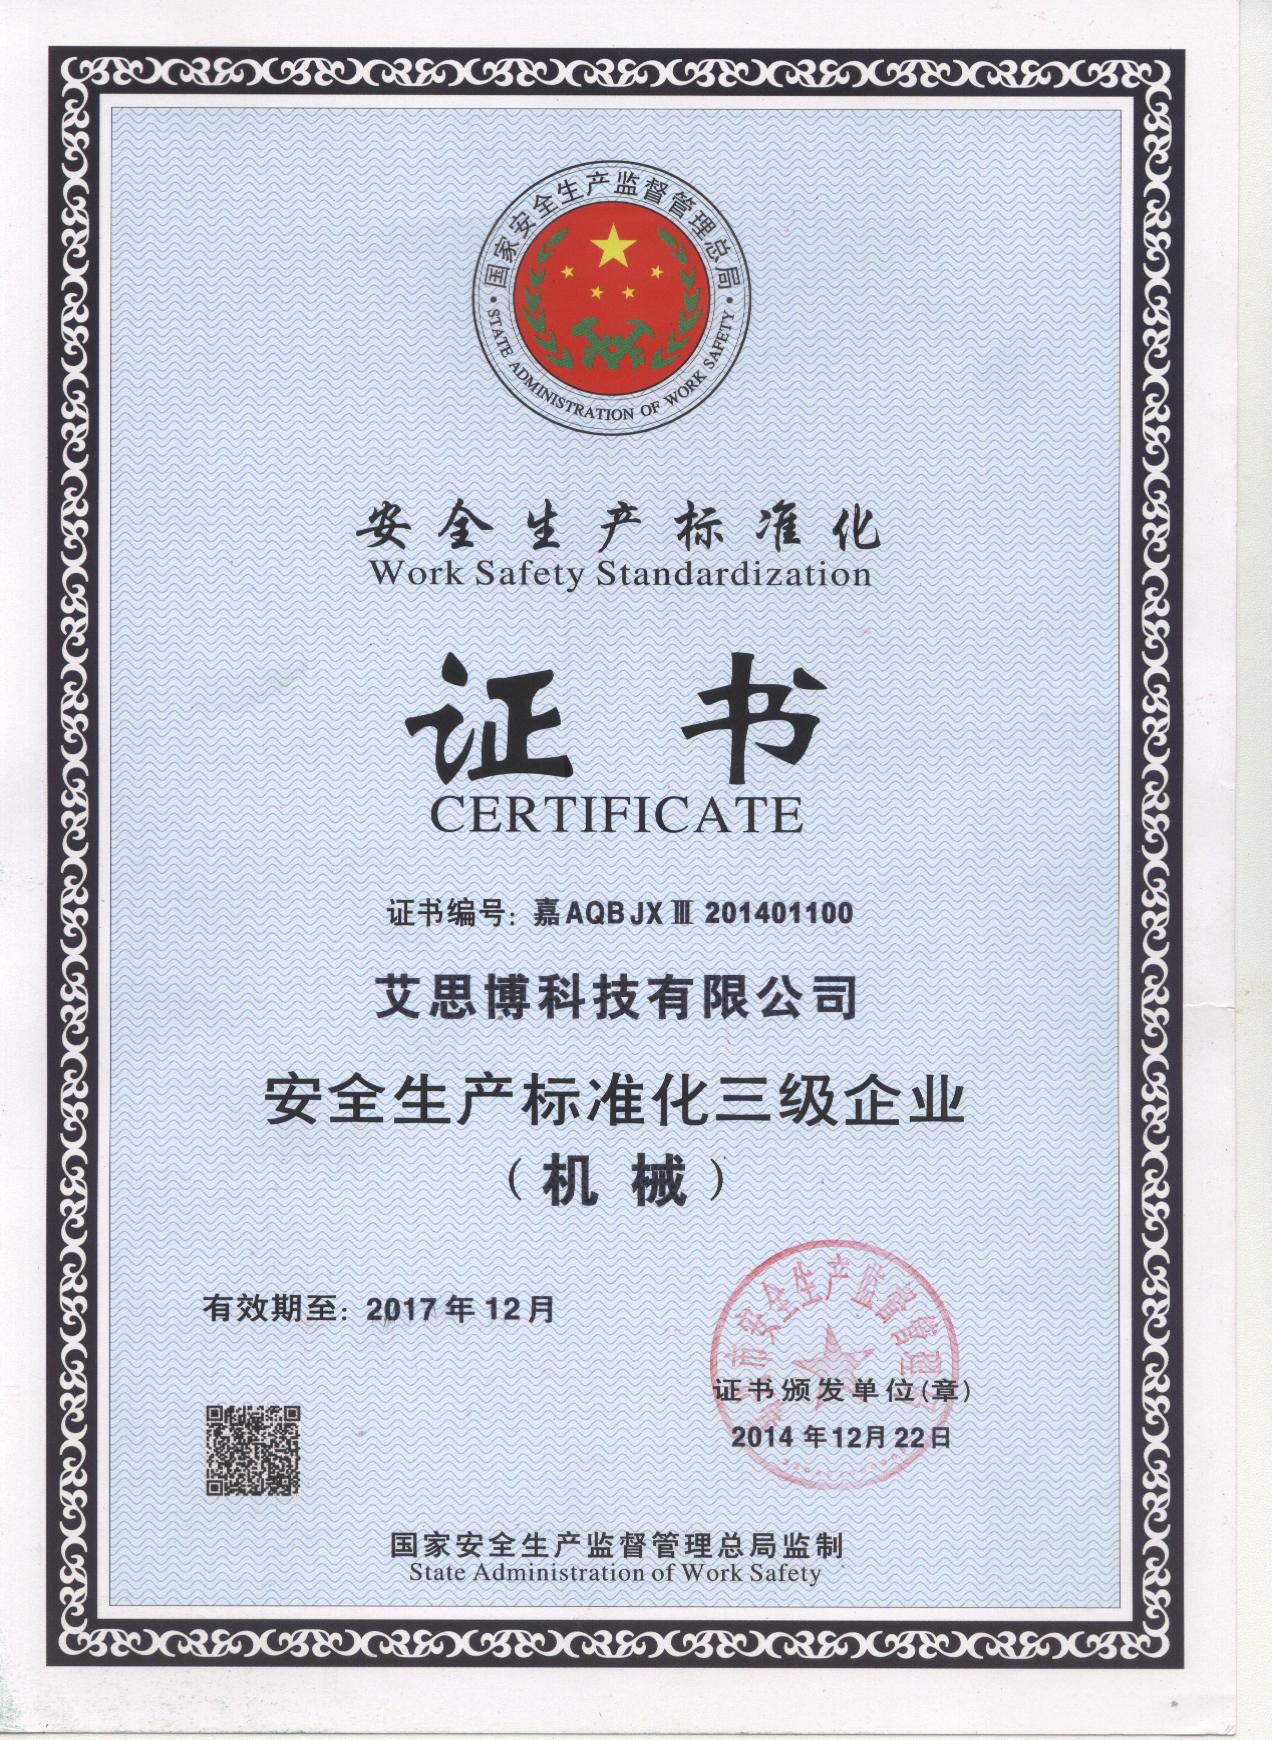 WORK SAFTY STANDRADIZATION CERTIFICATION